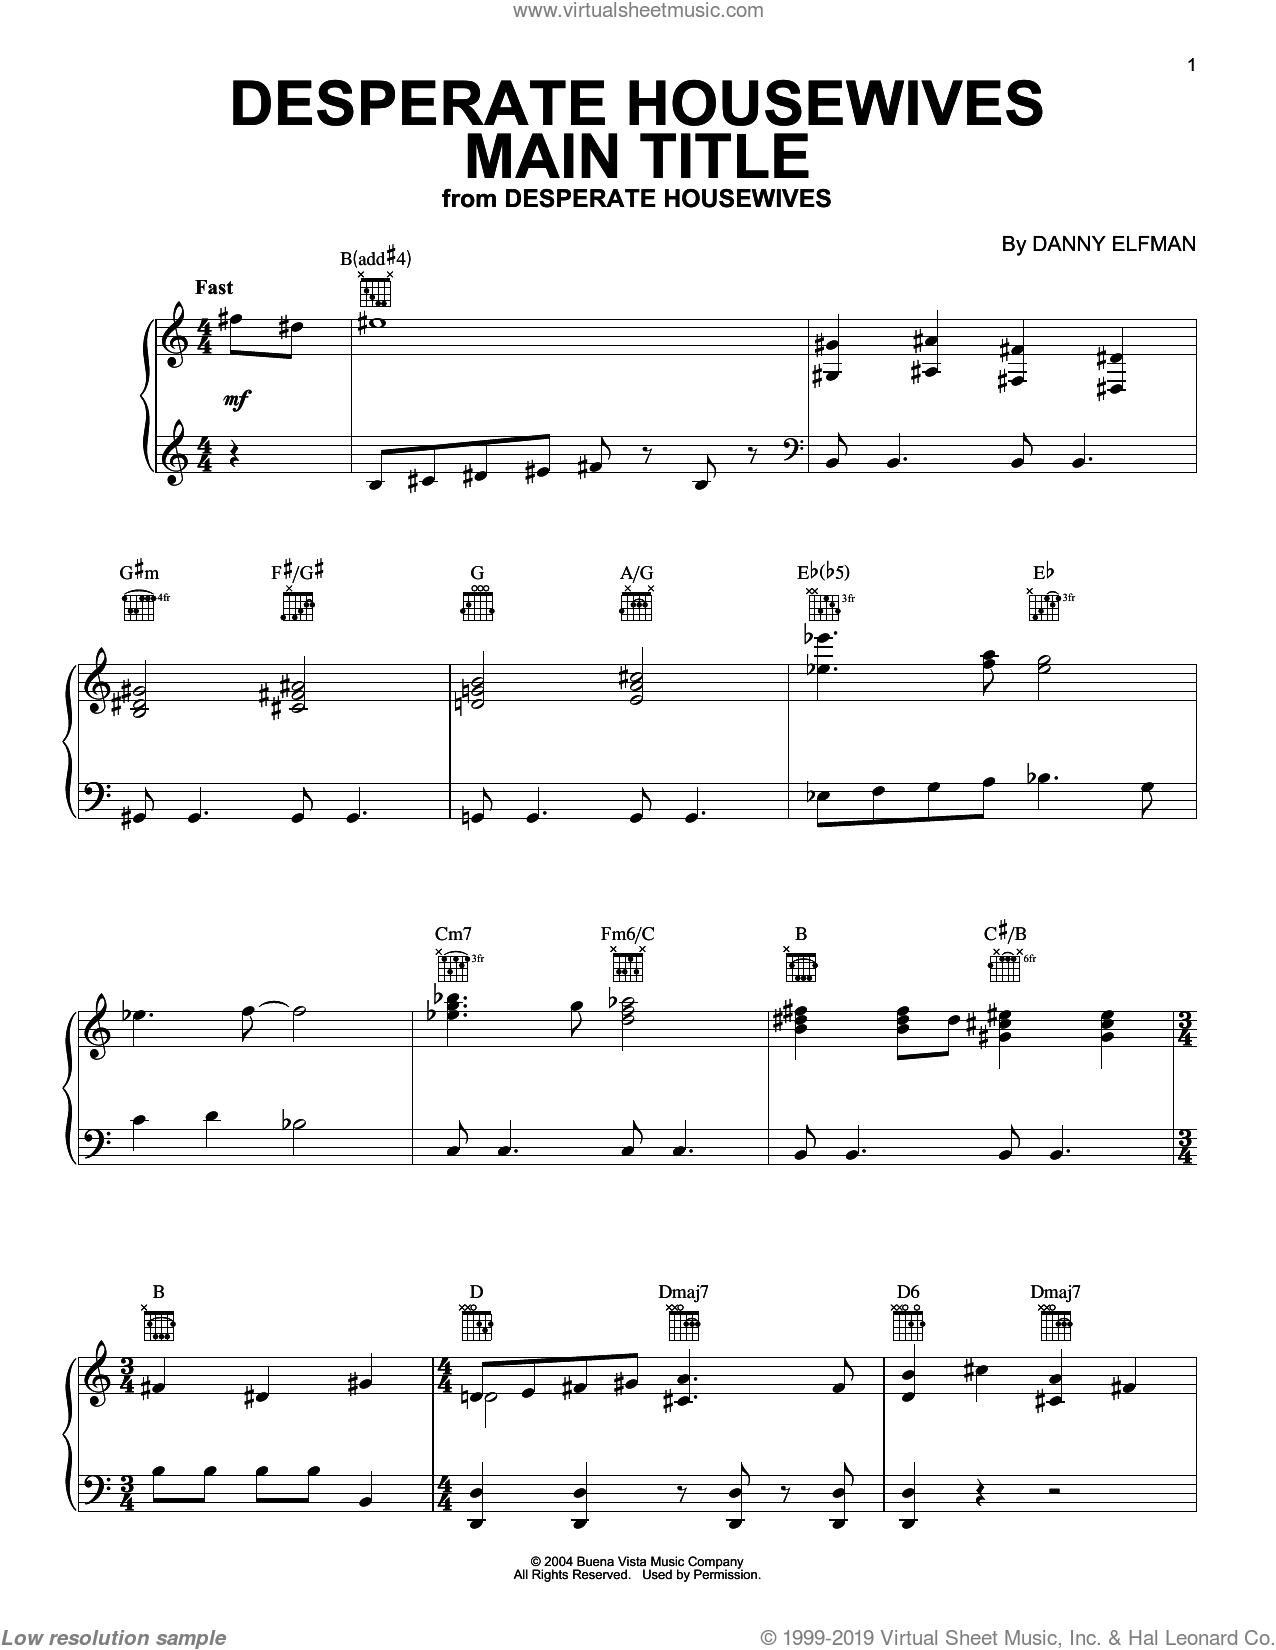 Desperate Housewives Main Title sheet music for piano solo by Danny Elfman, intermediate skill level